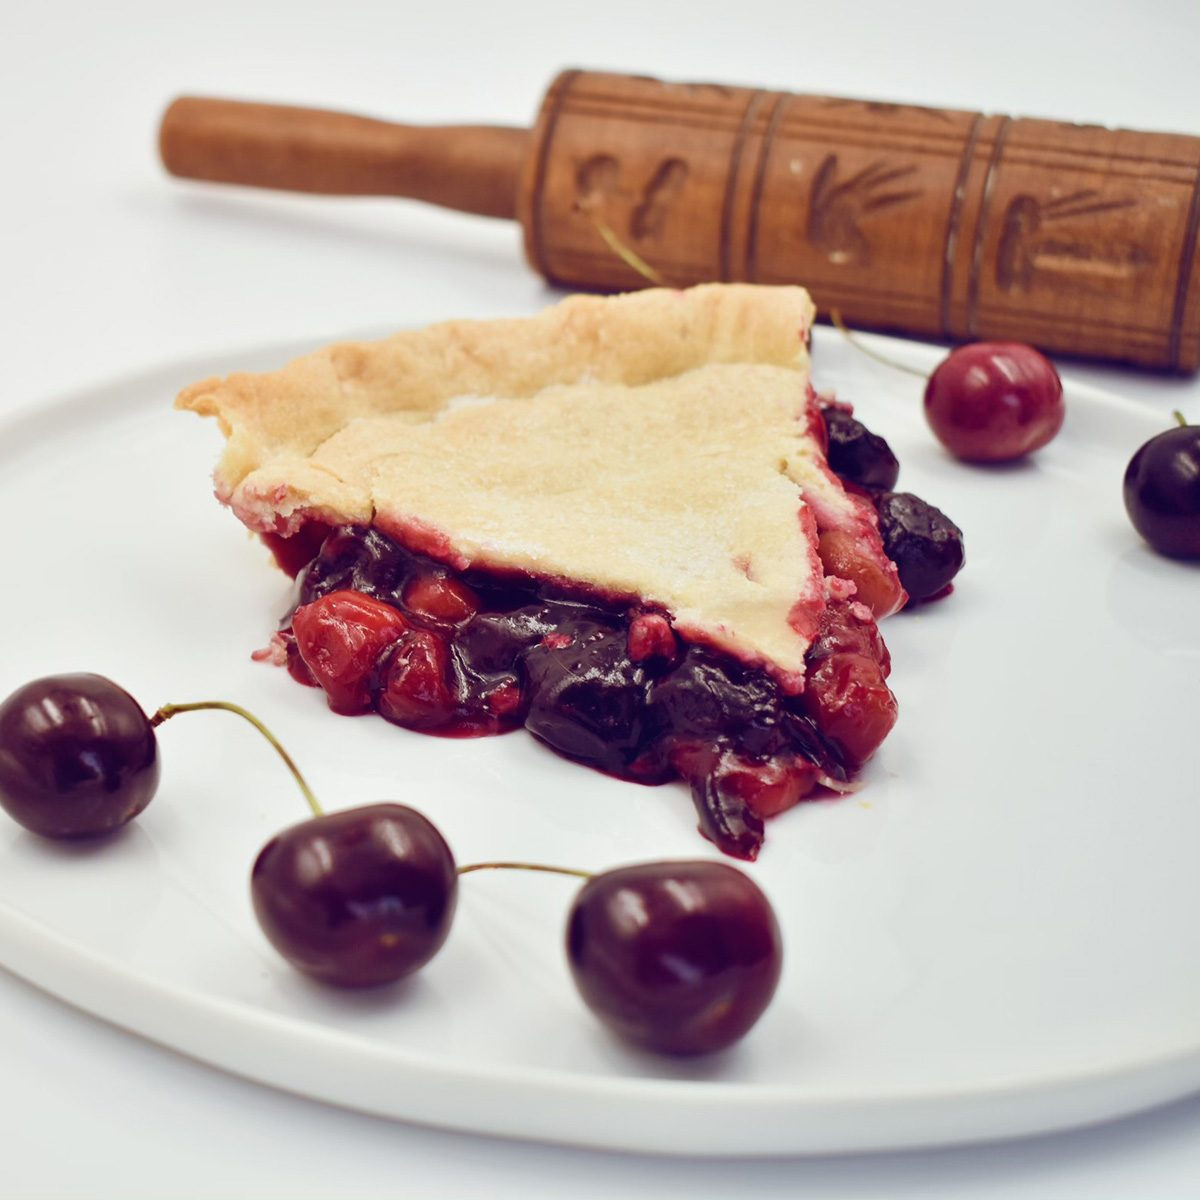 Slice of cherry pie beside a rolling pin